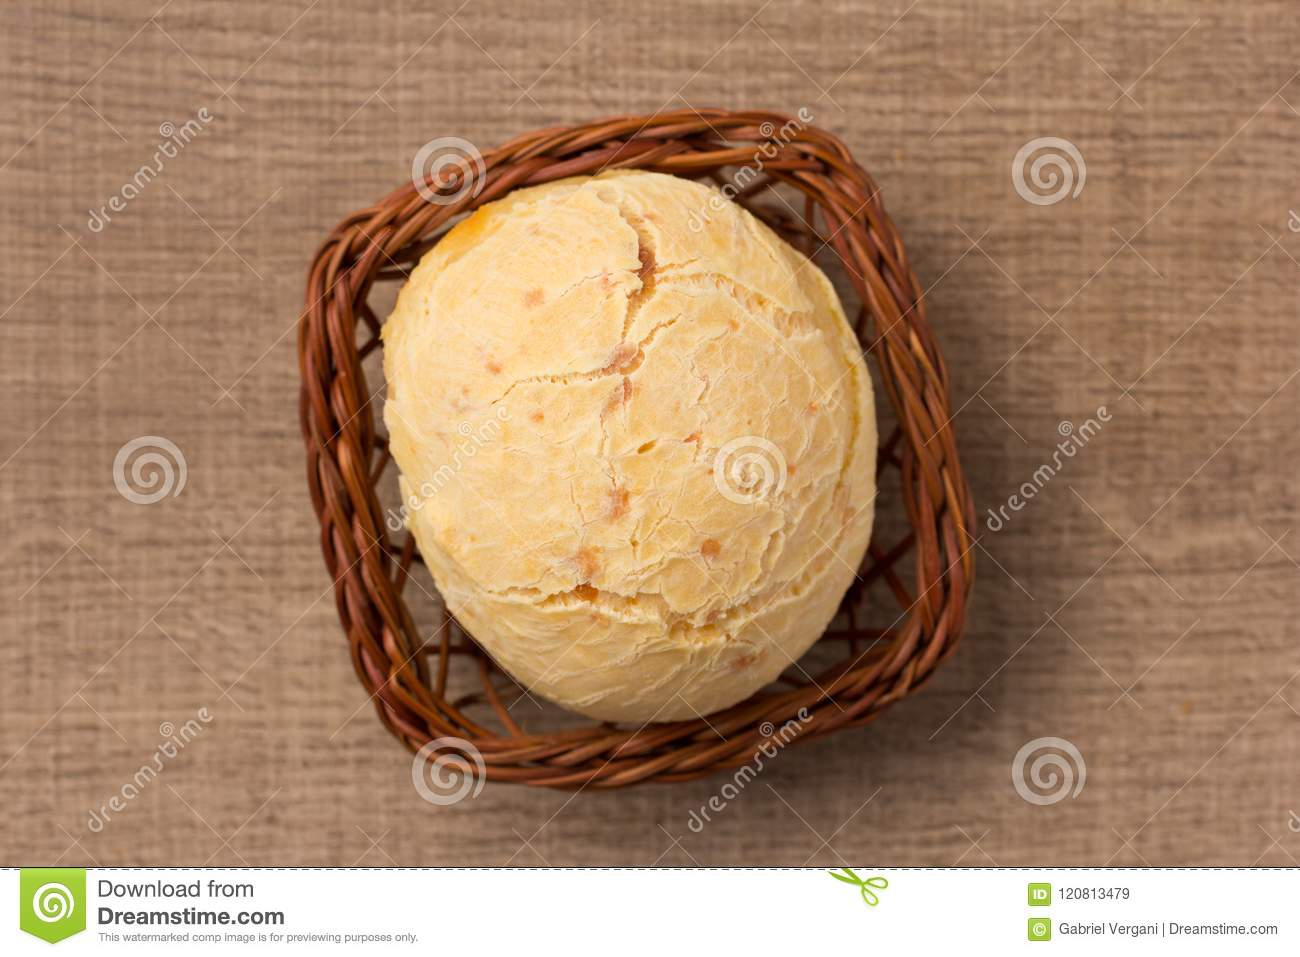 Pao de Queijo is a cheese bread ball from Brazil. Also known as